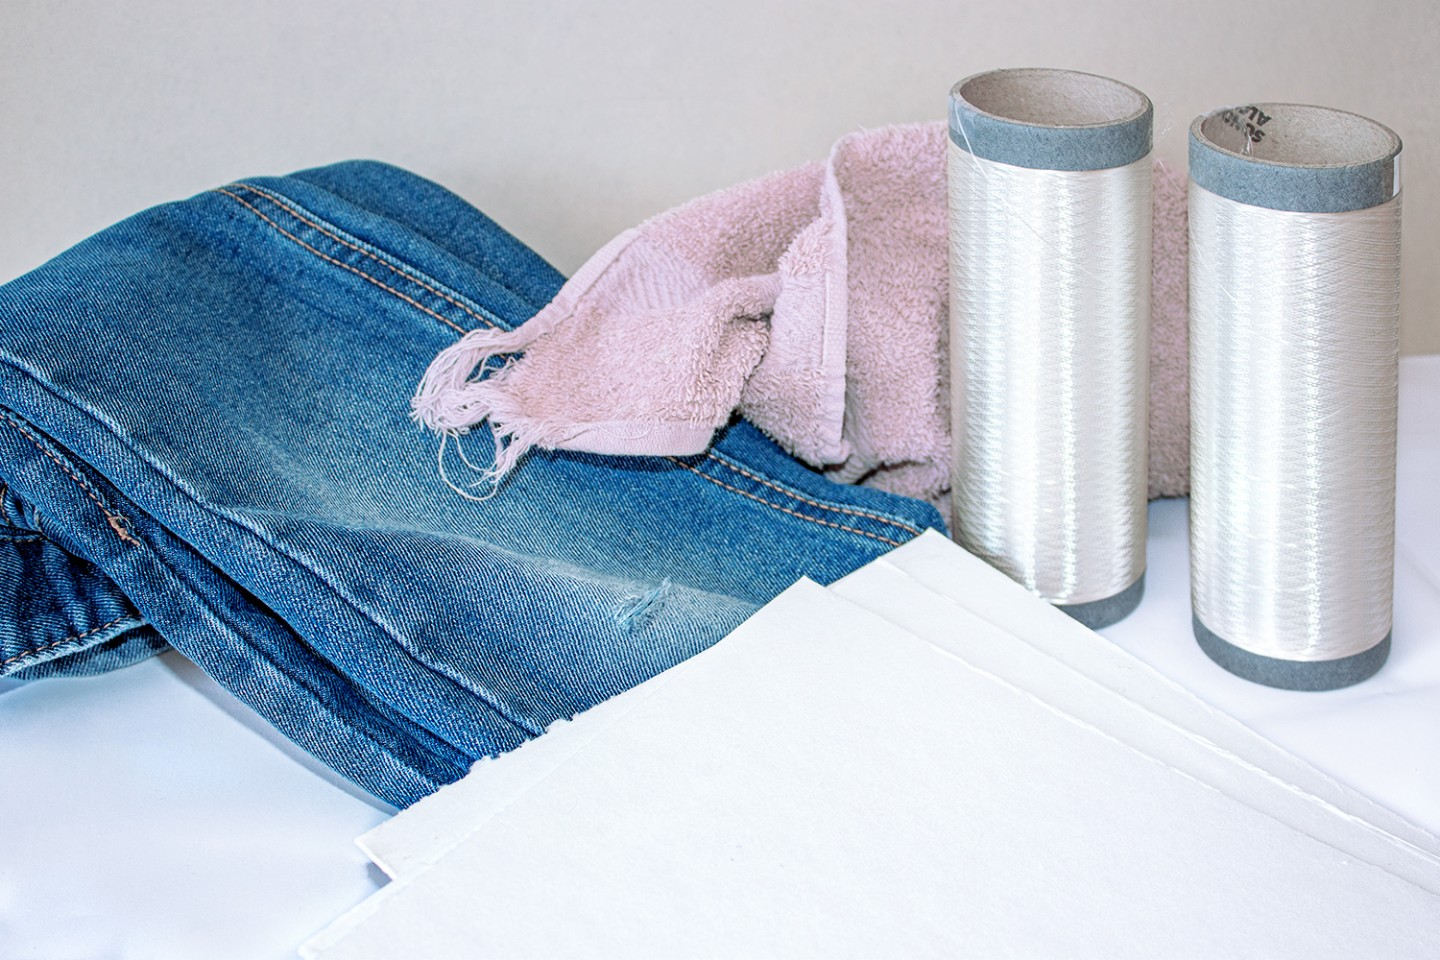 Wound onto a spool, the viscose filament yarn was spun from recycled cotton provided in form of cellulose sheets. Researchers at the Fraunhofer IAP have found a way to turn cotton clothes such as jeans into new high-quality garments rather than lowly cleaning rags.